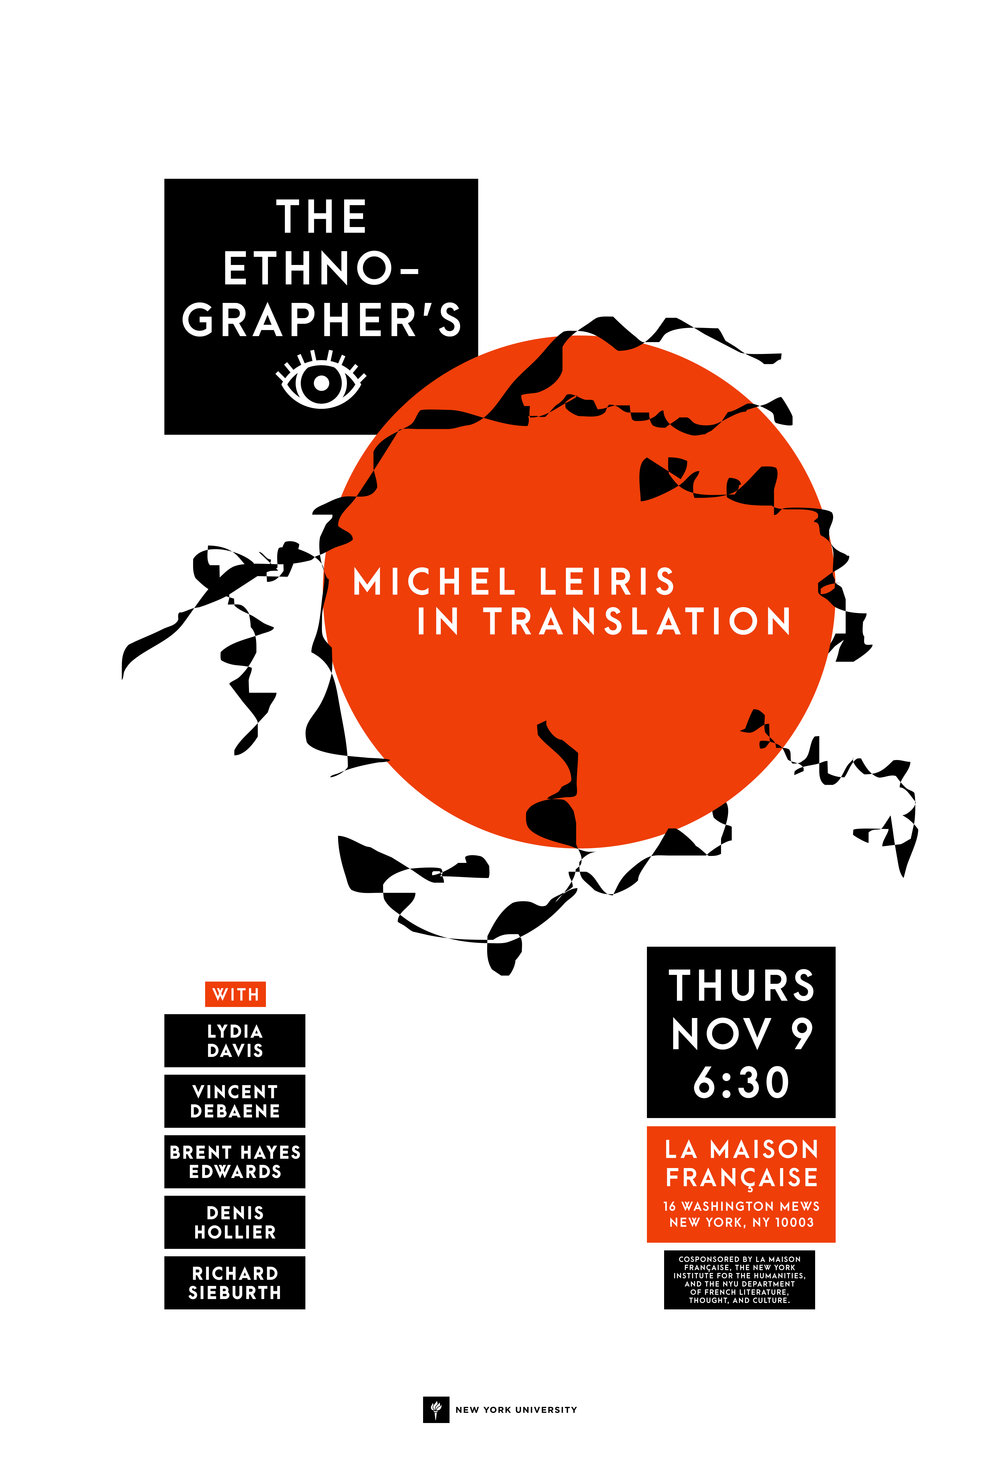 Event flyer for The Ethnographer's I